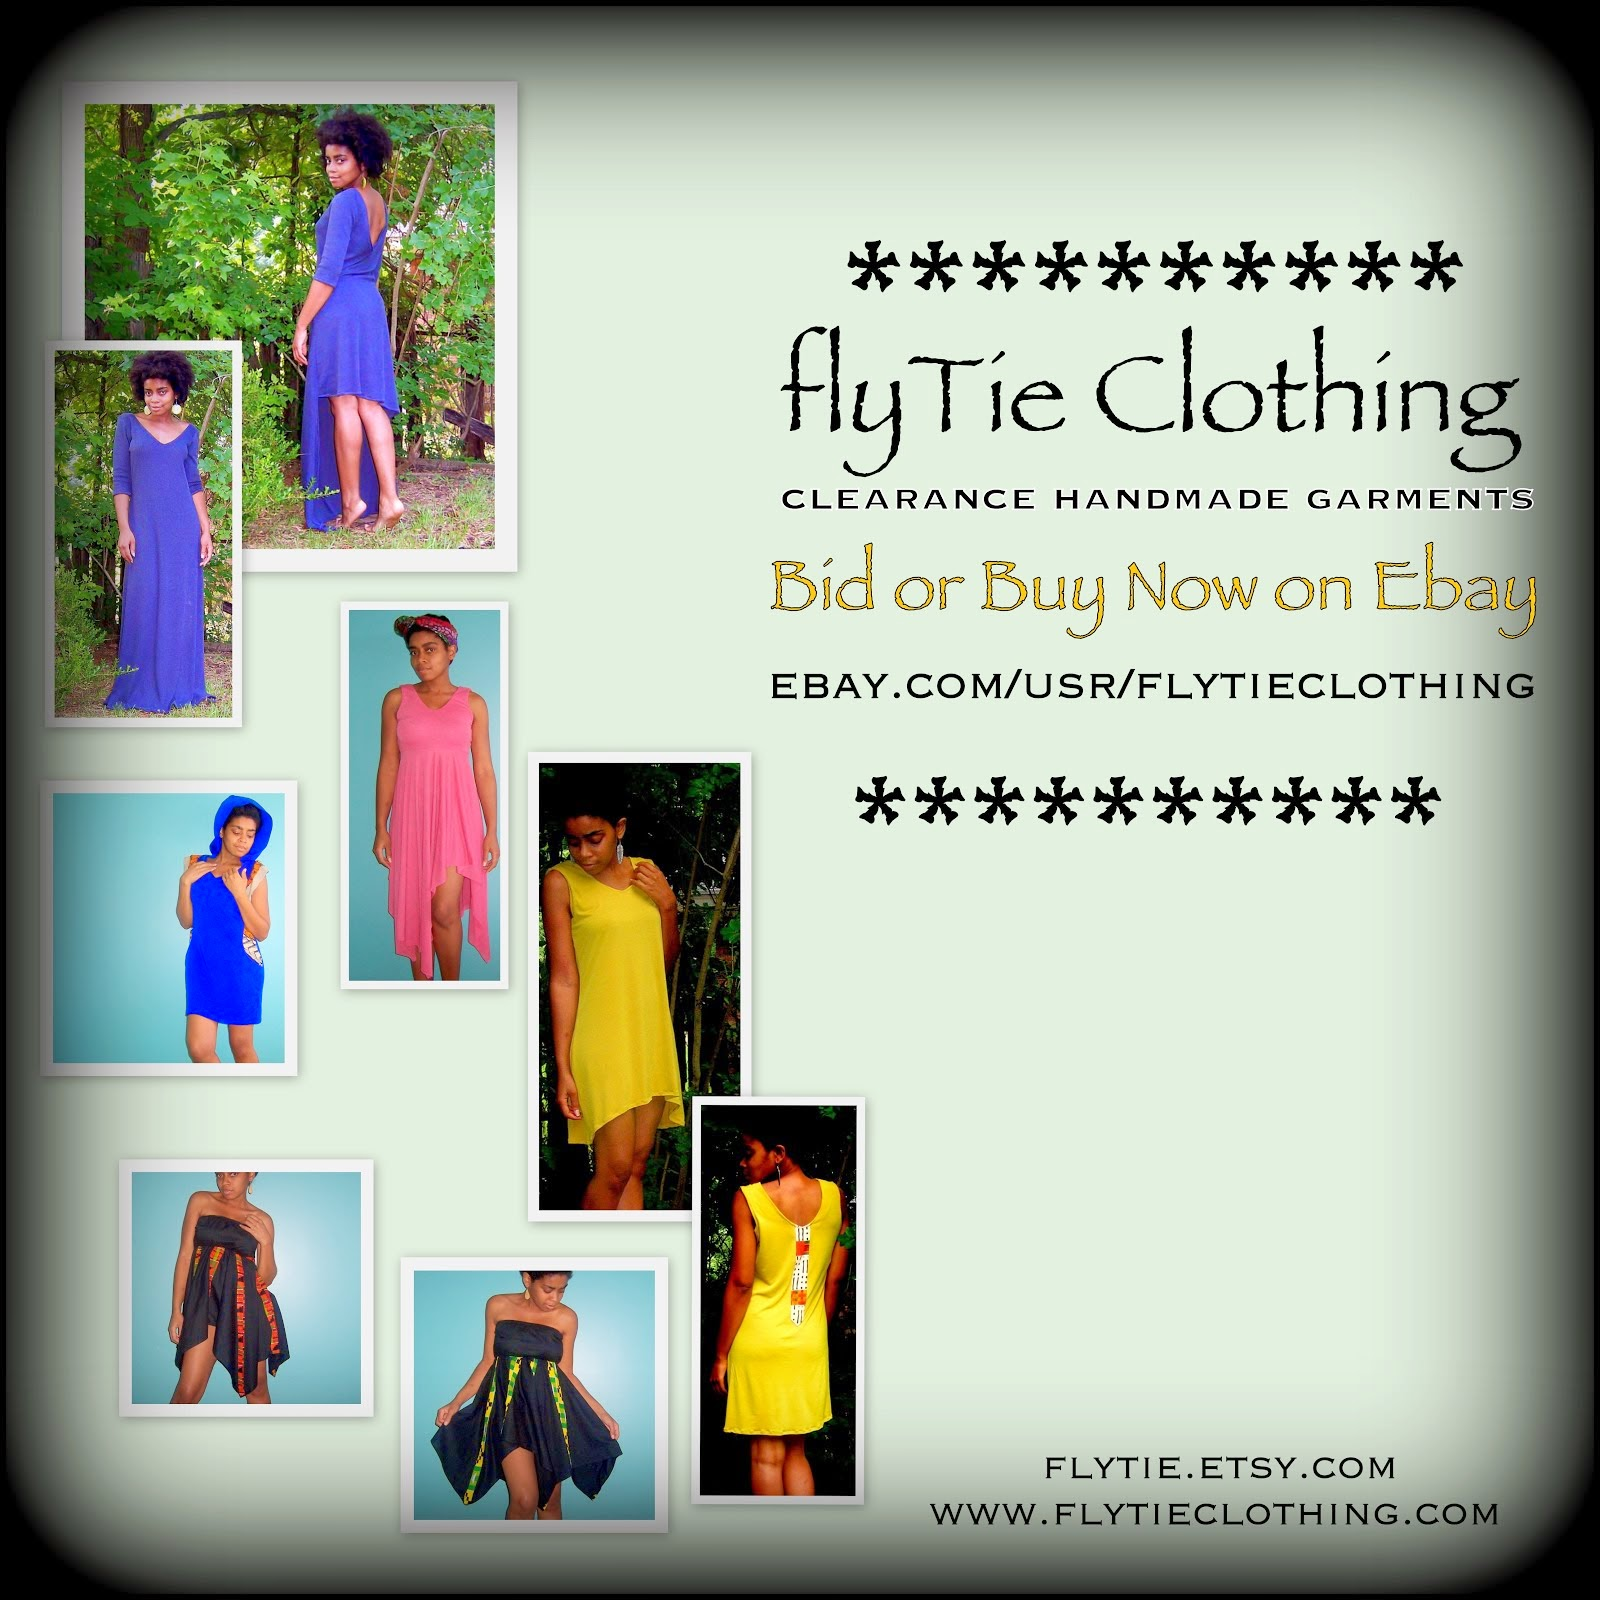 flyTie Clothing on Ebay